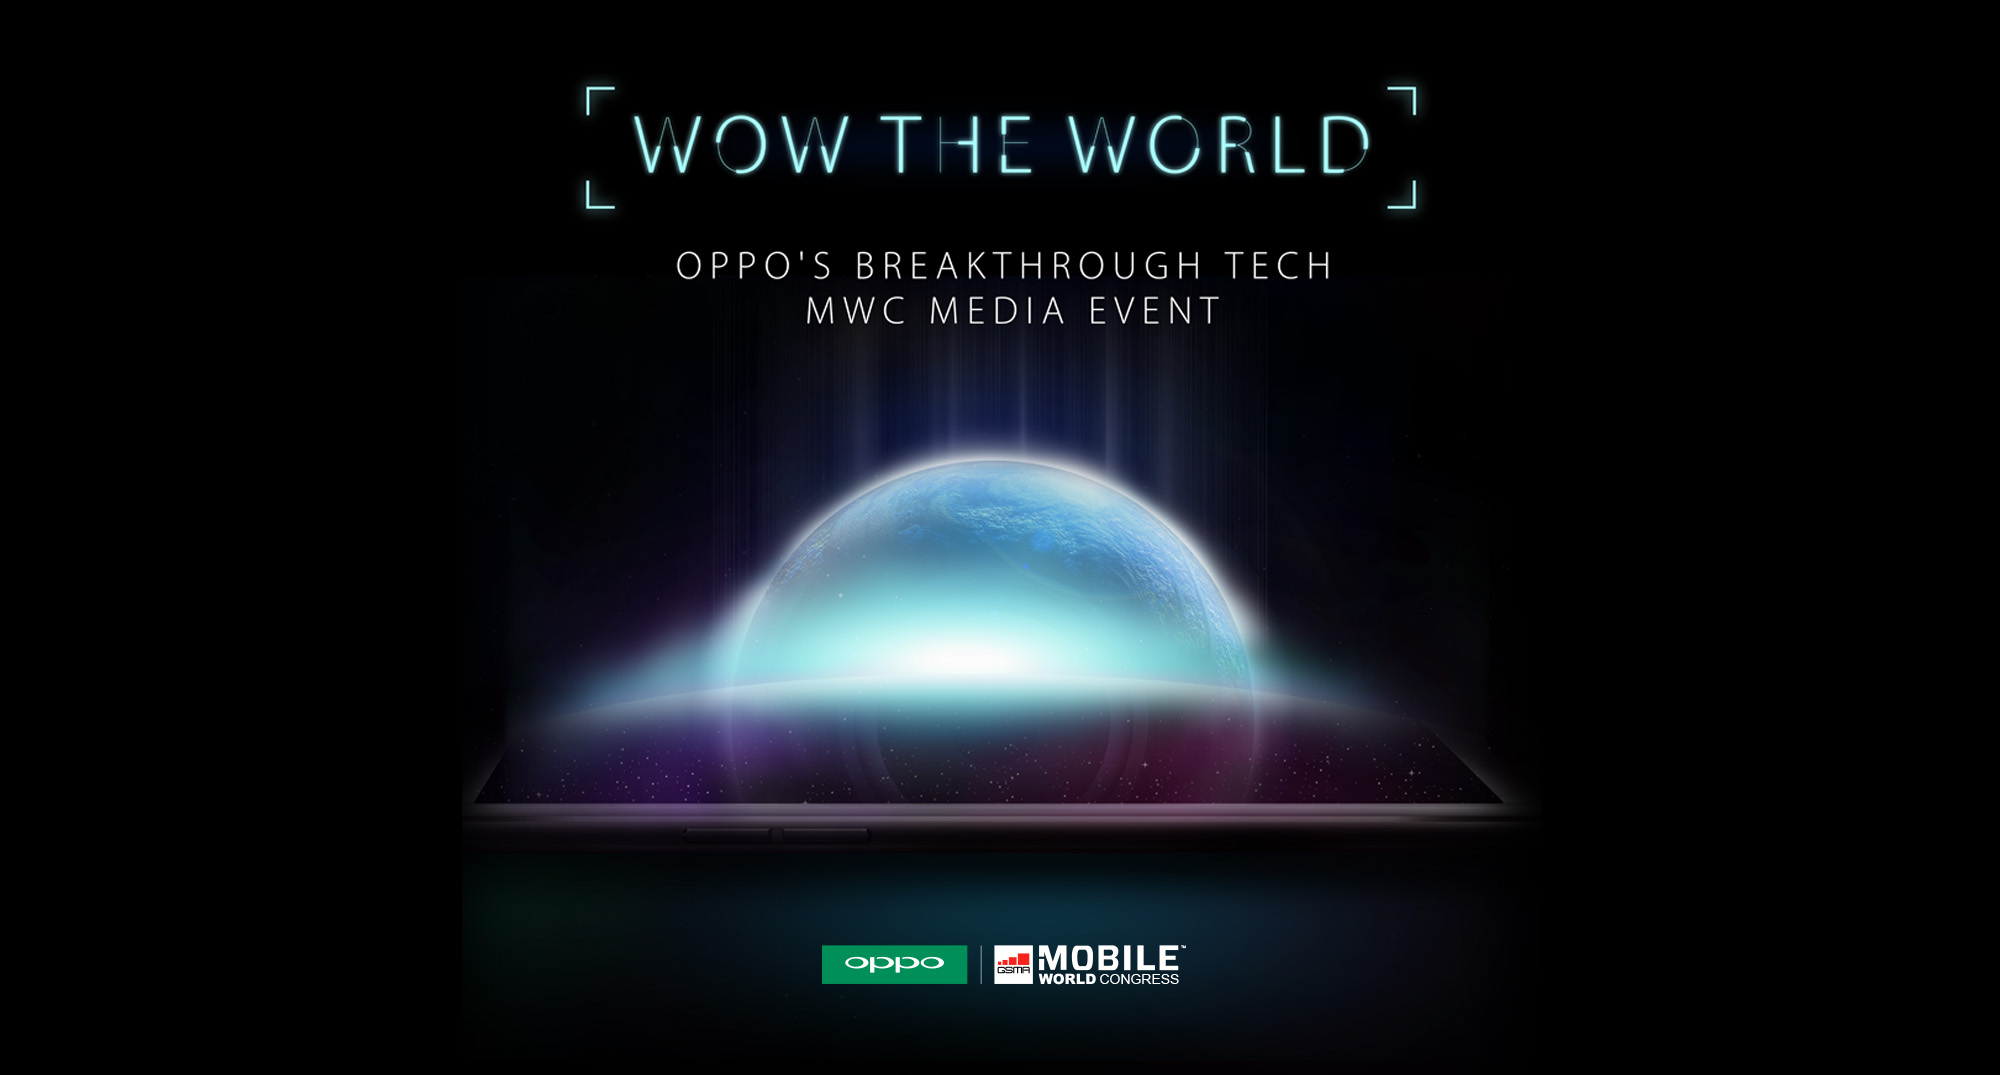 Oppo MWC 16 teaser 12697462_451595011697915_45733103108441709_o